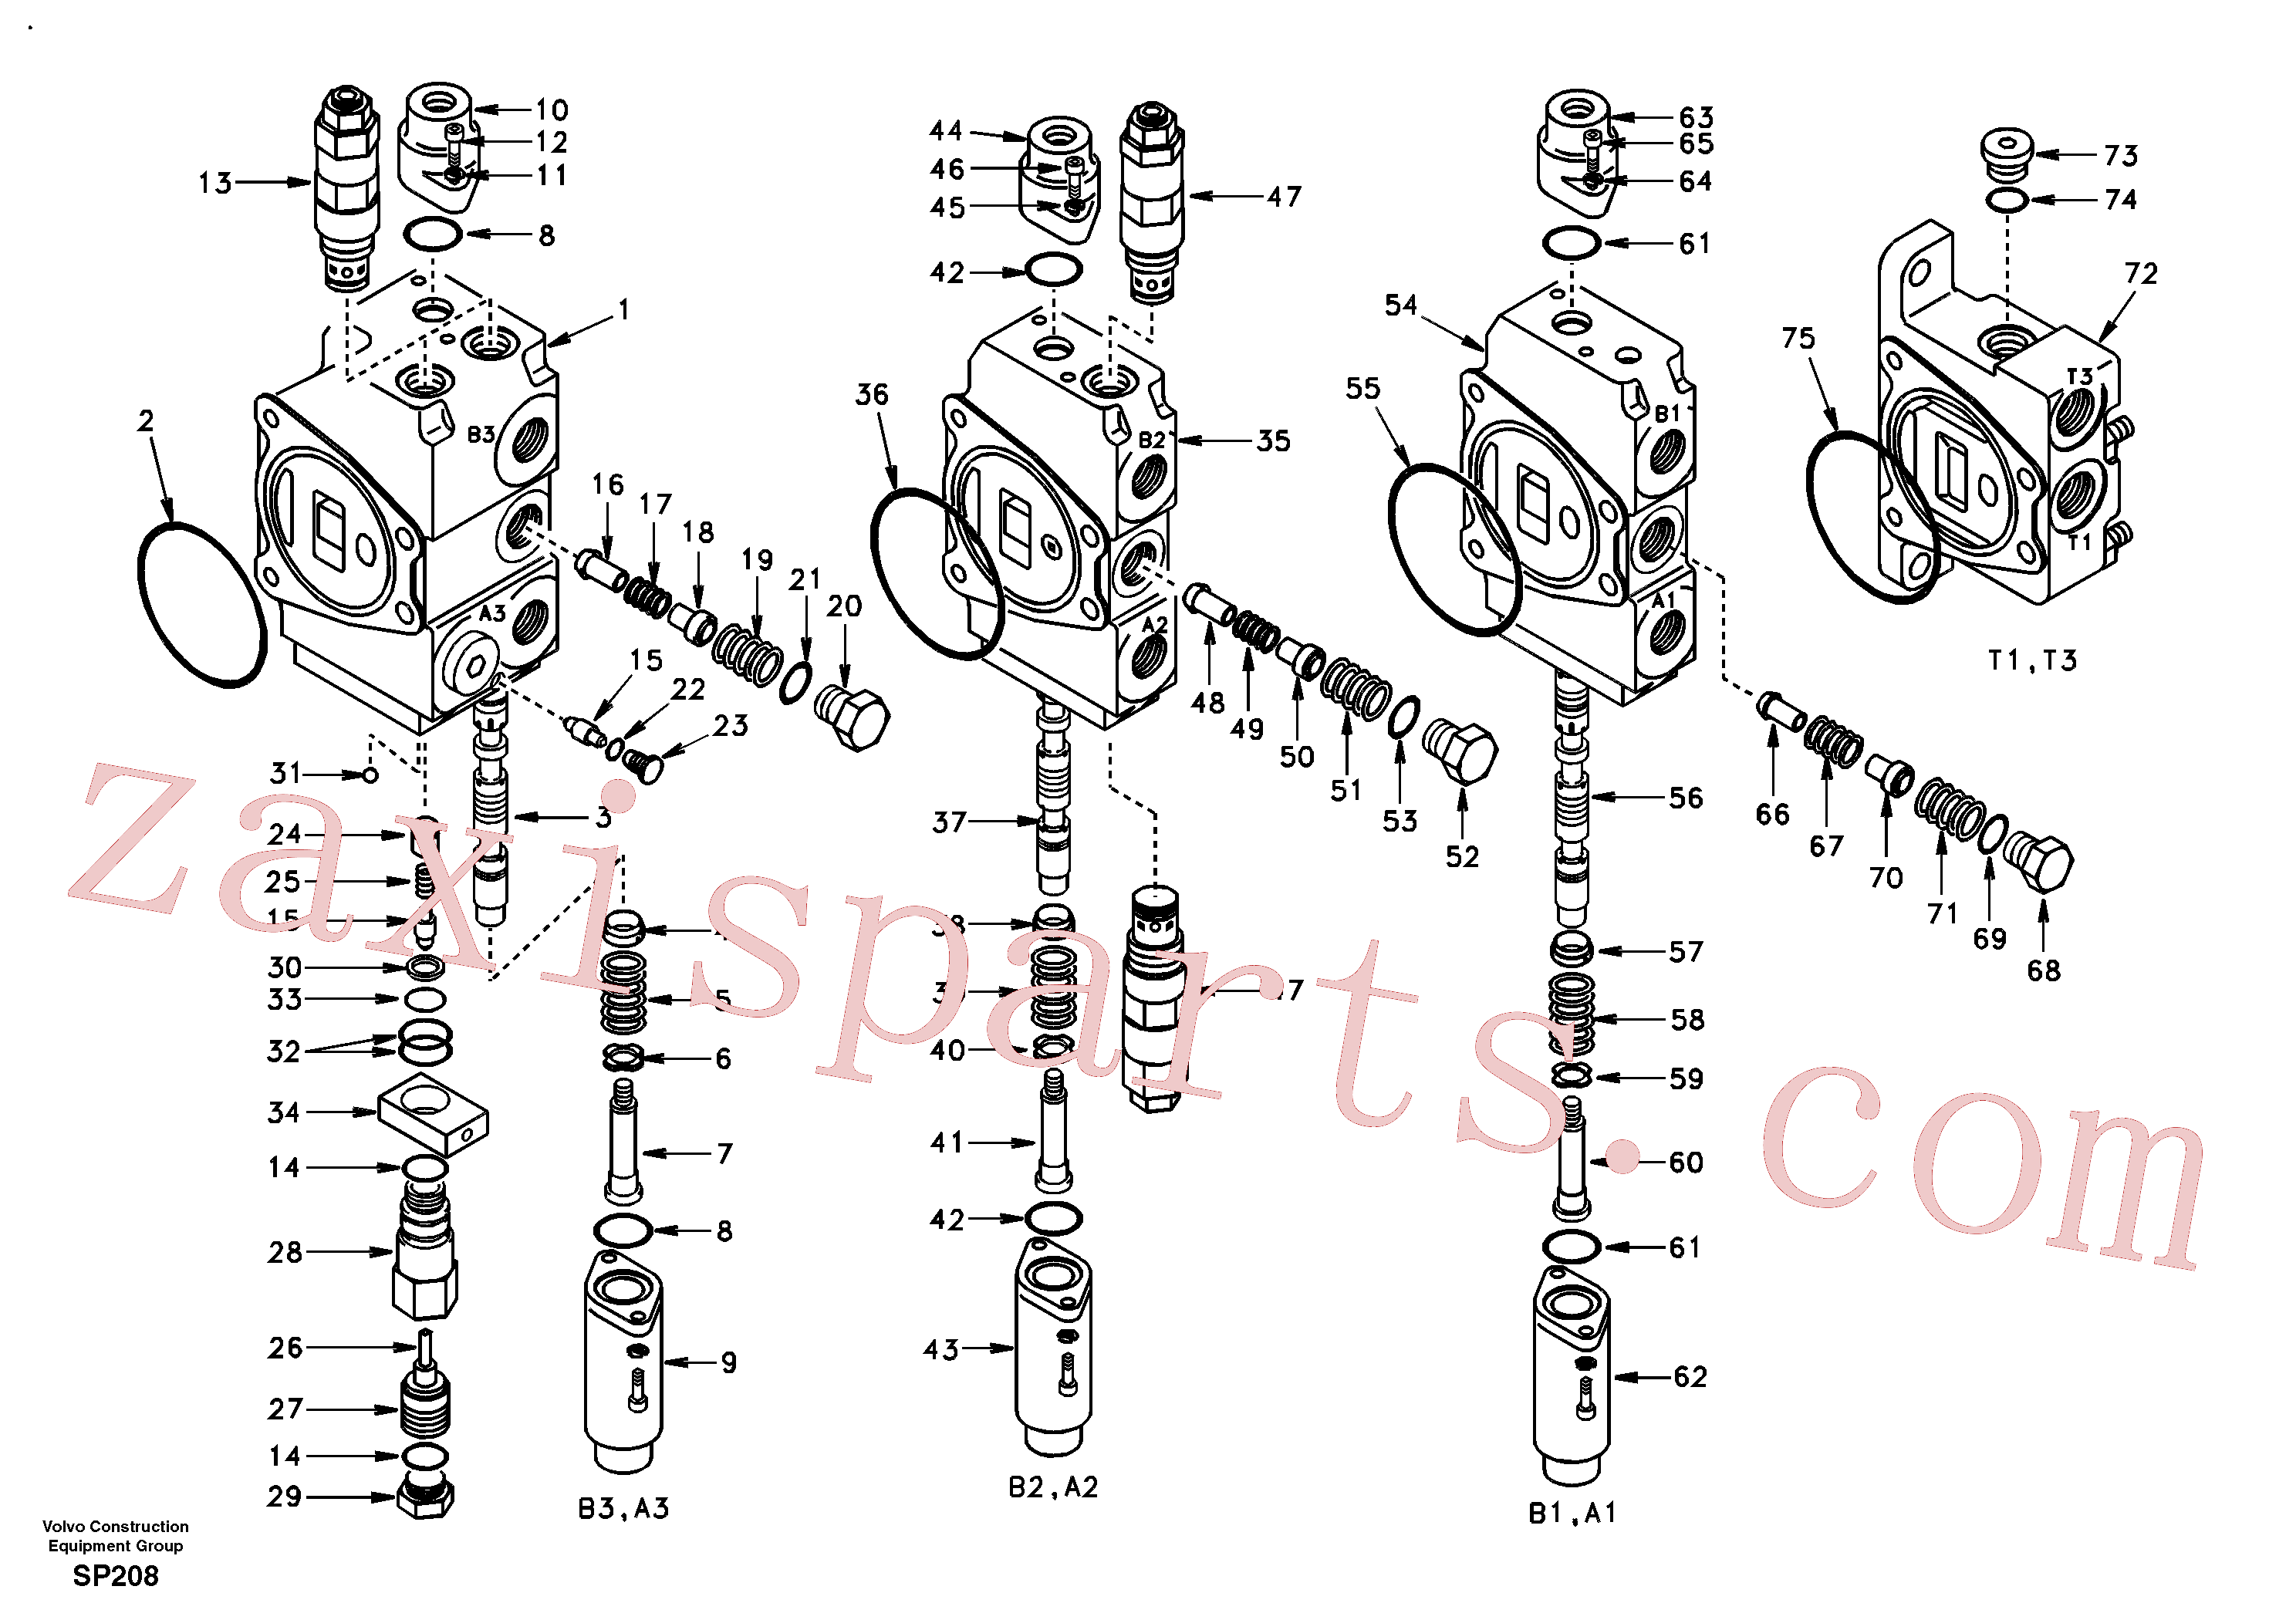 SA7250-21814 for Volvo Main control valve, boom 1 and bucket and dipper arm 2 and outlet.(SP208 assembly)